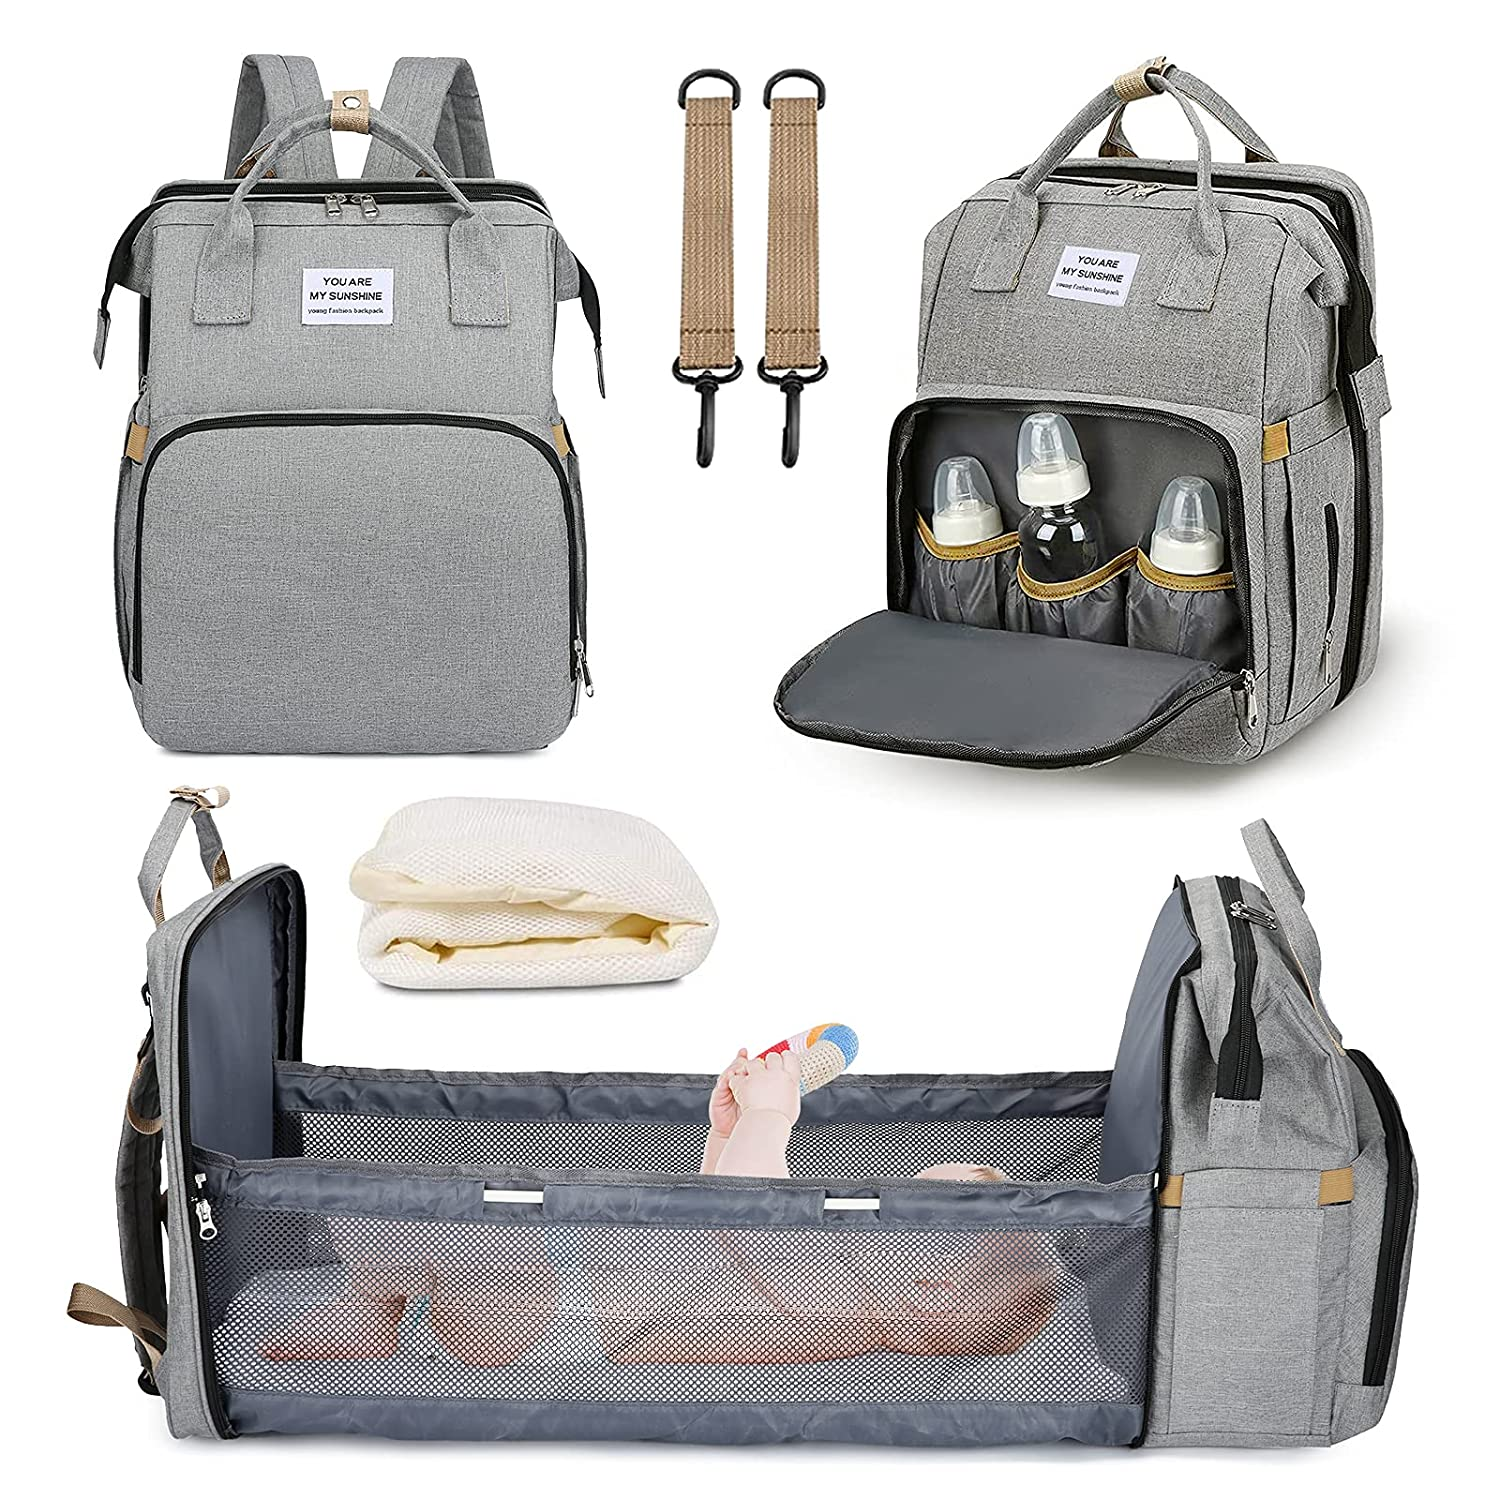 Lifecolor Diaper Bag Nappy Bags Waterproof Travel Backpack Mom Baby Care(Gray)